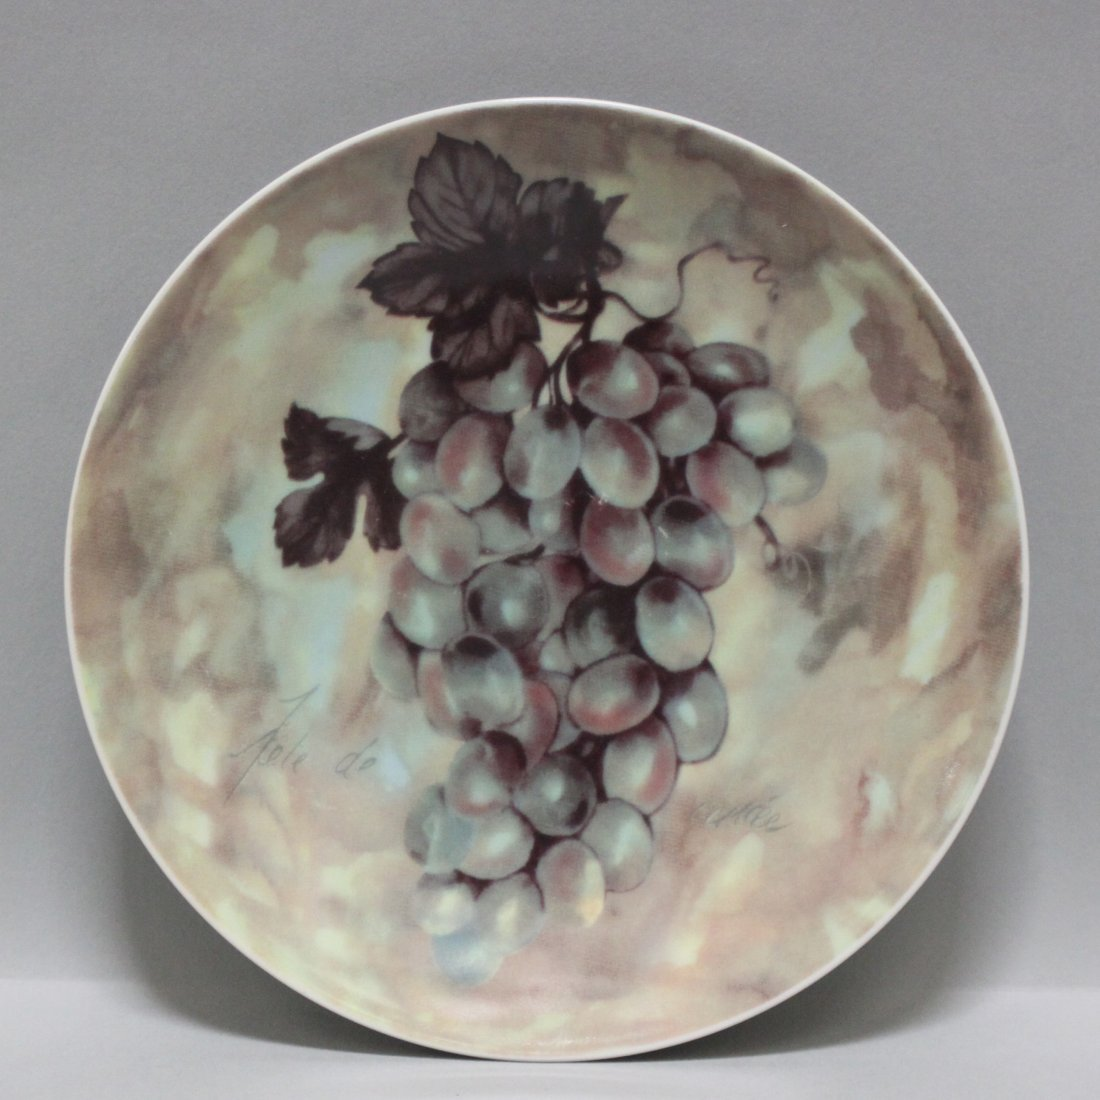 I. Godinger & Co decorative Plate - Grapes - 2